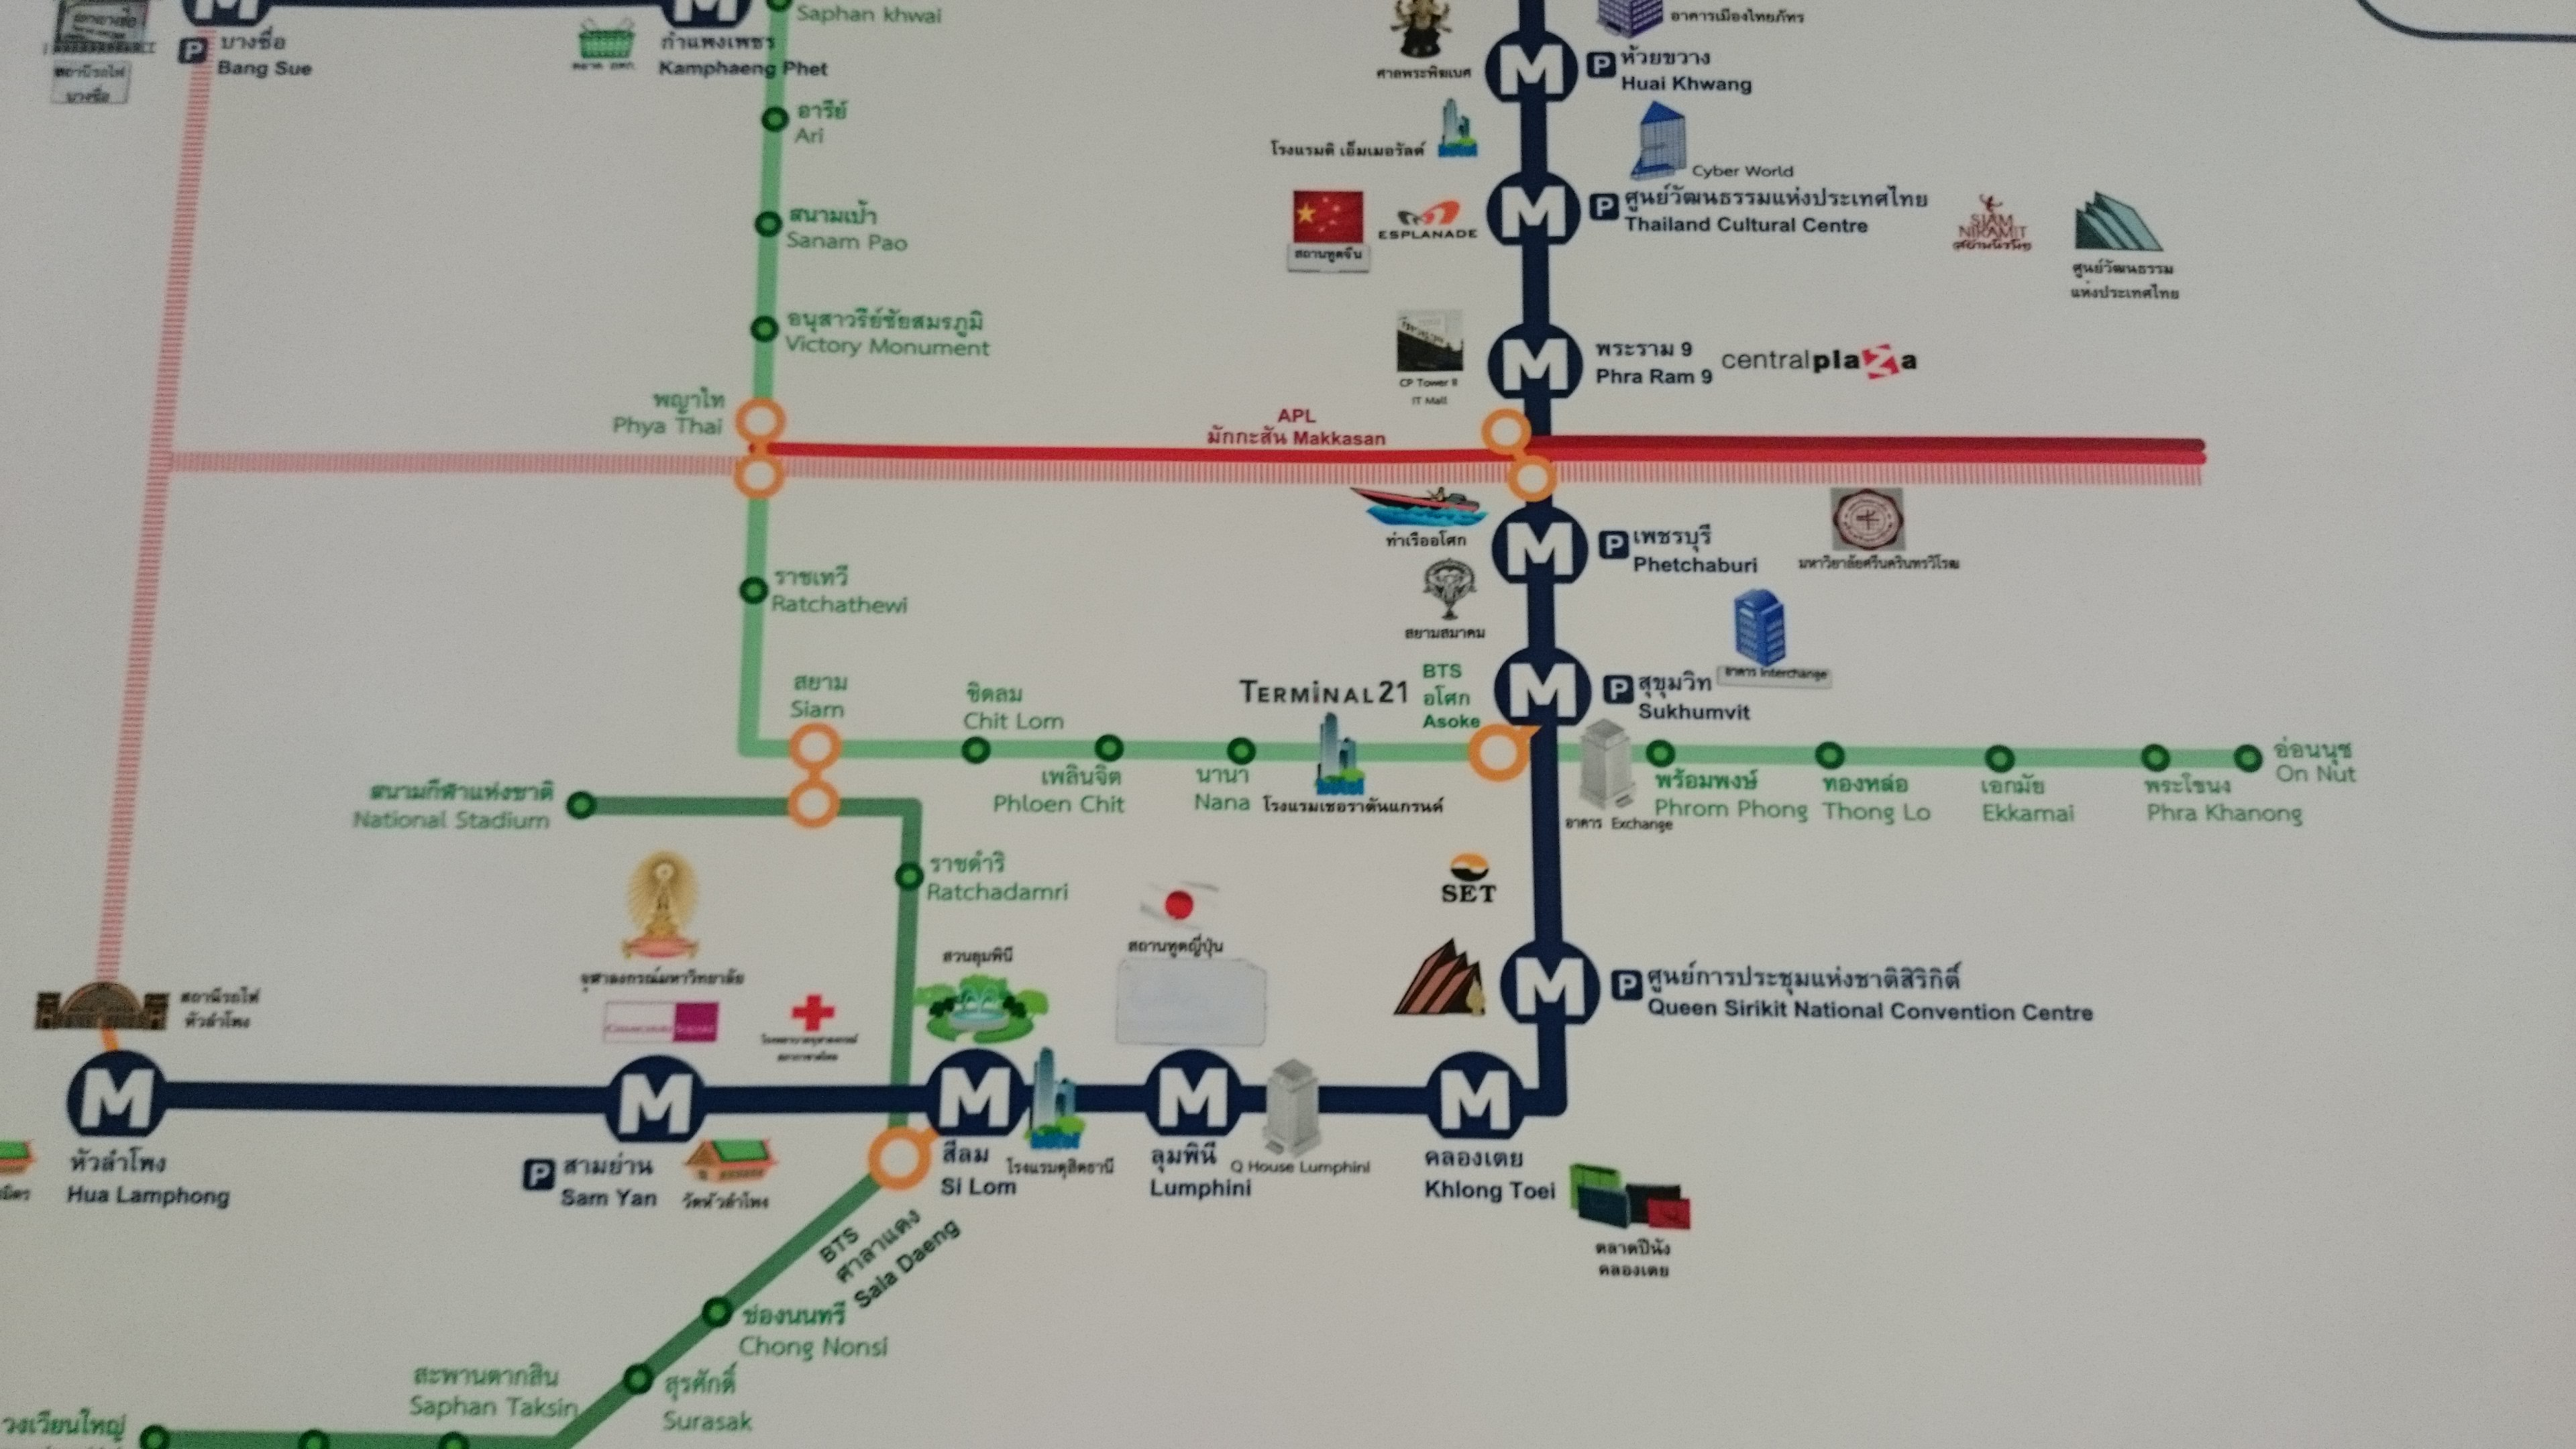 December 2014 Bangkok to Pattaya via Public Transport Money Travel